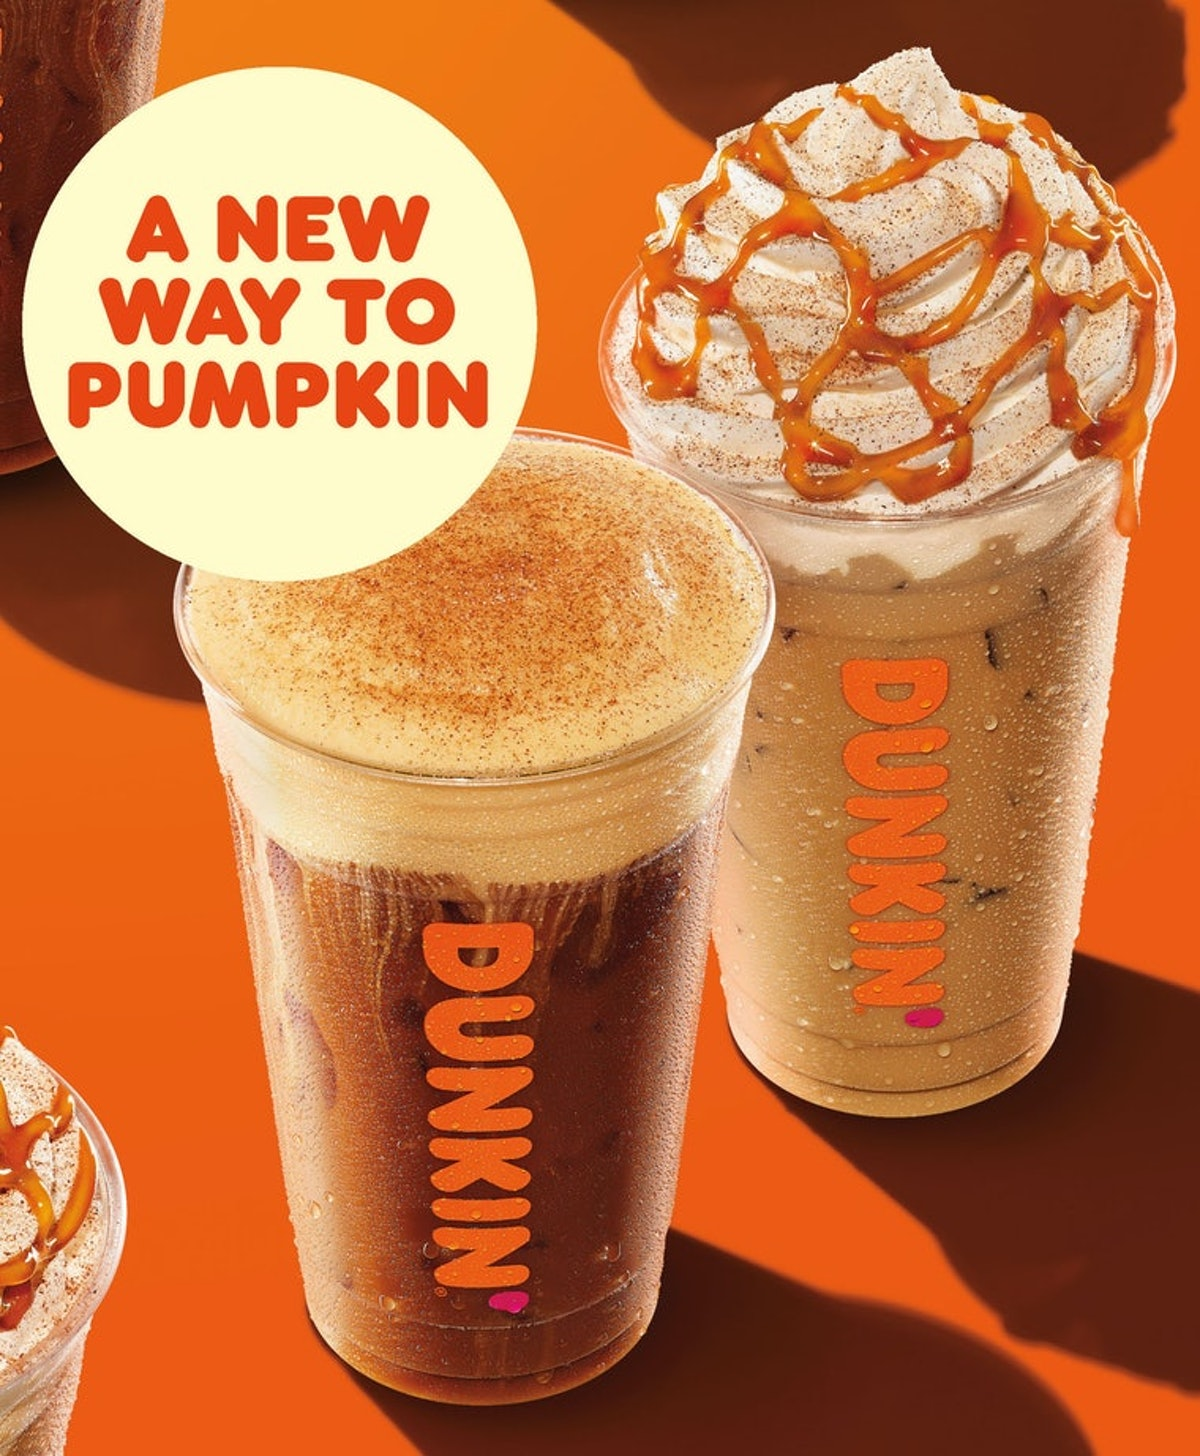 Here's what to know about if Dunkin's Pumpkin Spice Latte is vegan because it might surprise you.